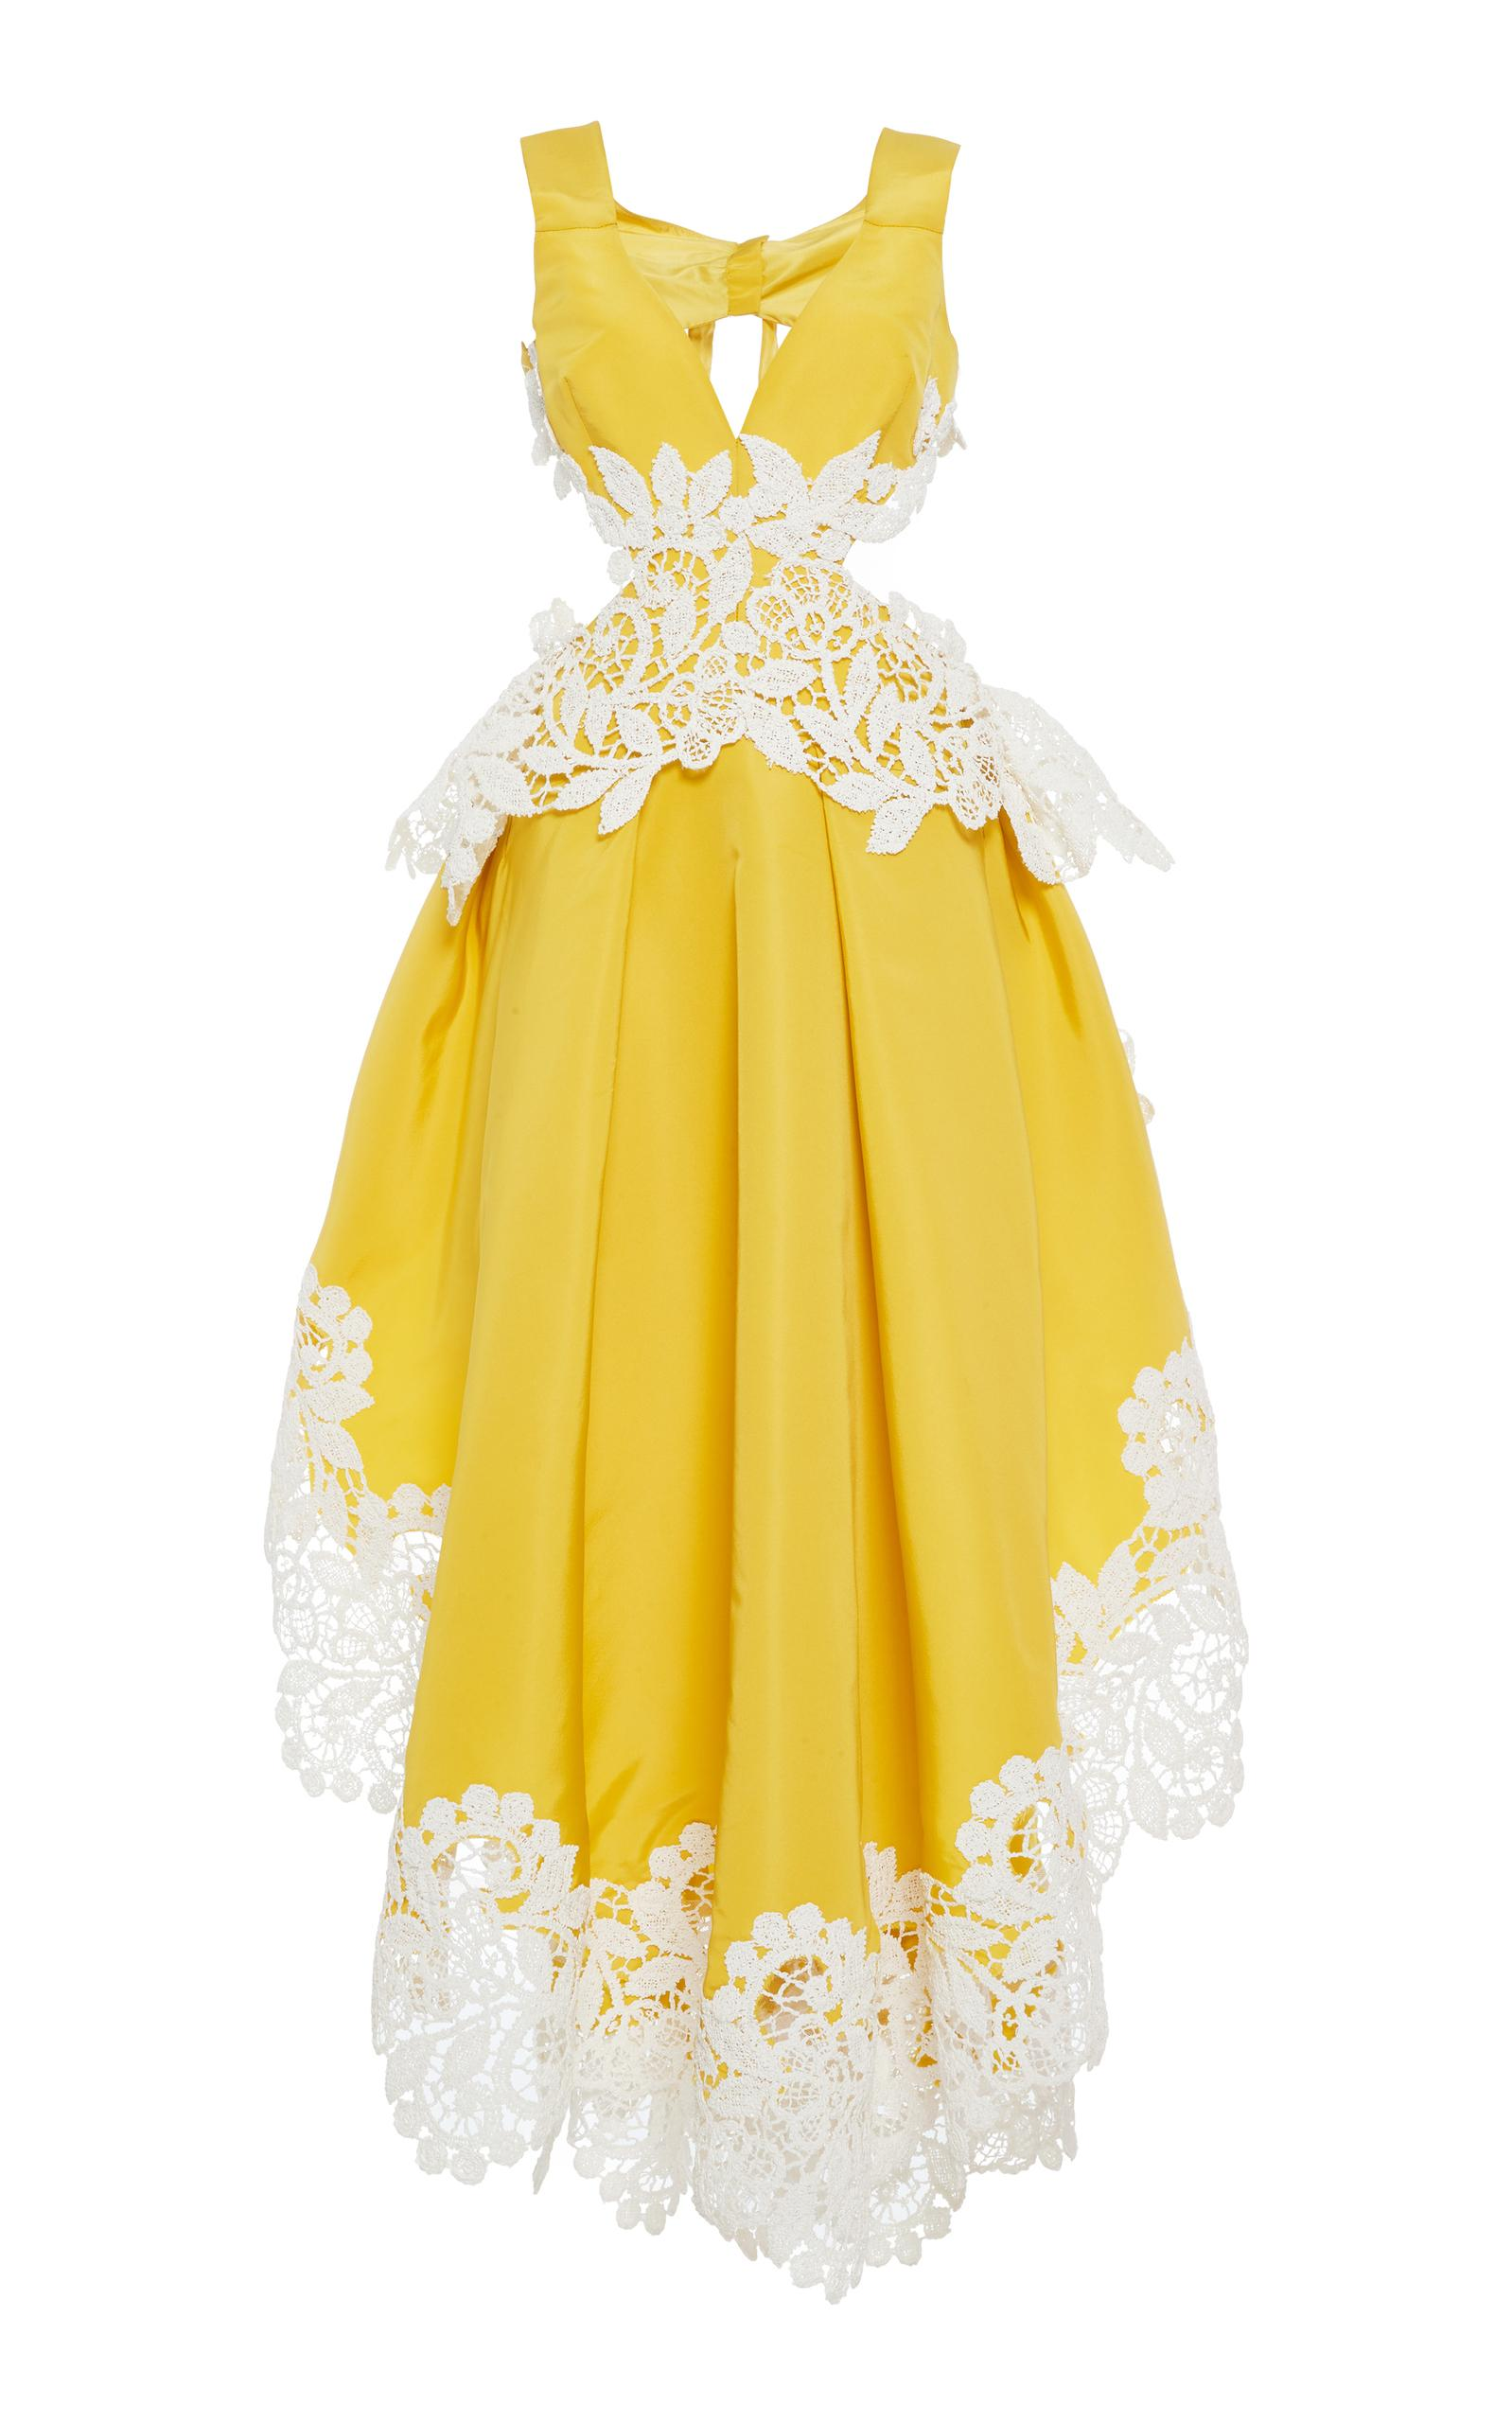 Rosie Assoulin Just Let Me Live Guipure Lace-Trimmed Silk-Faille Gown In Yellow